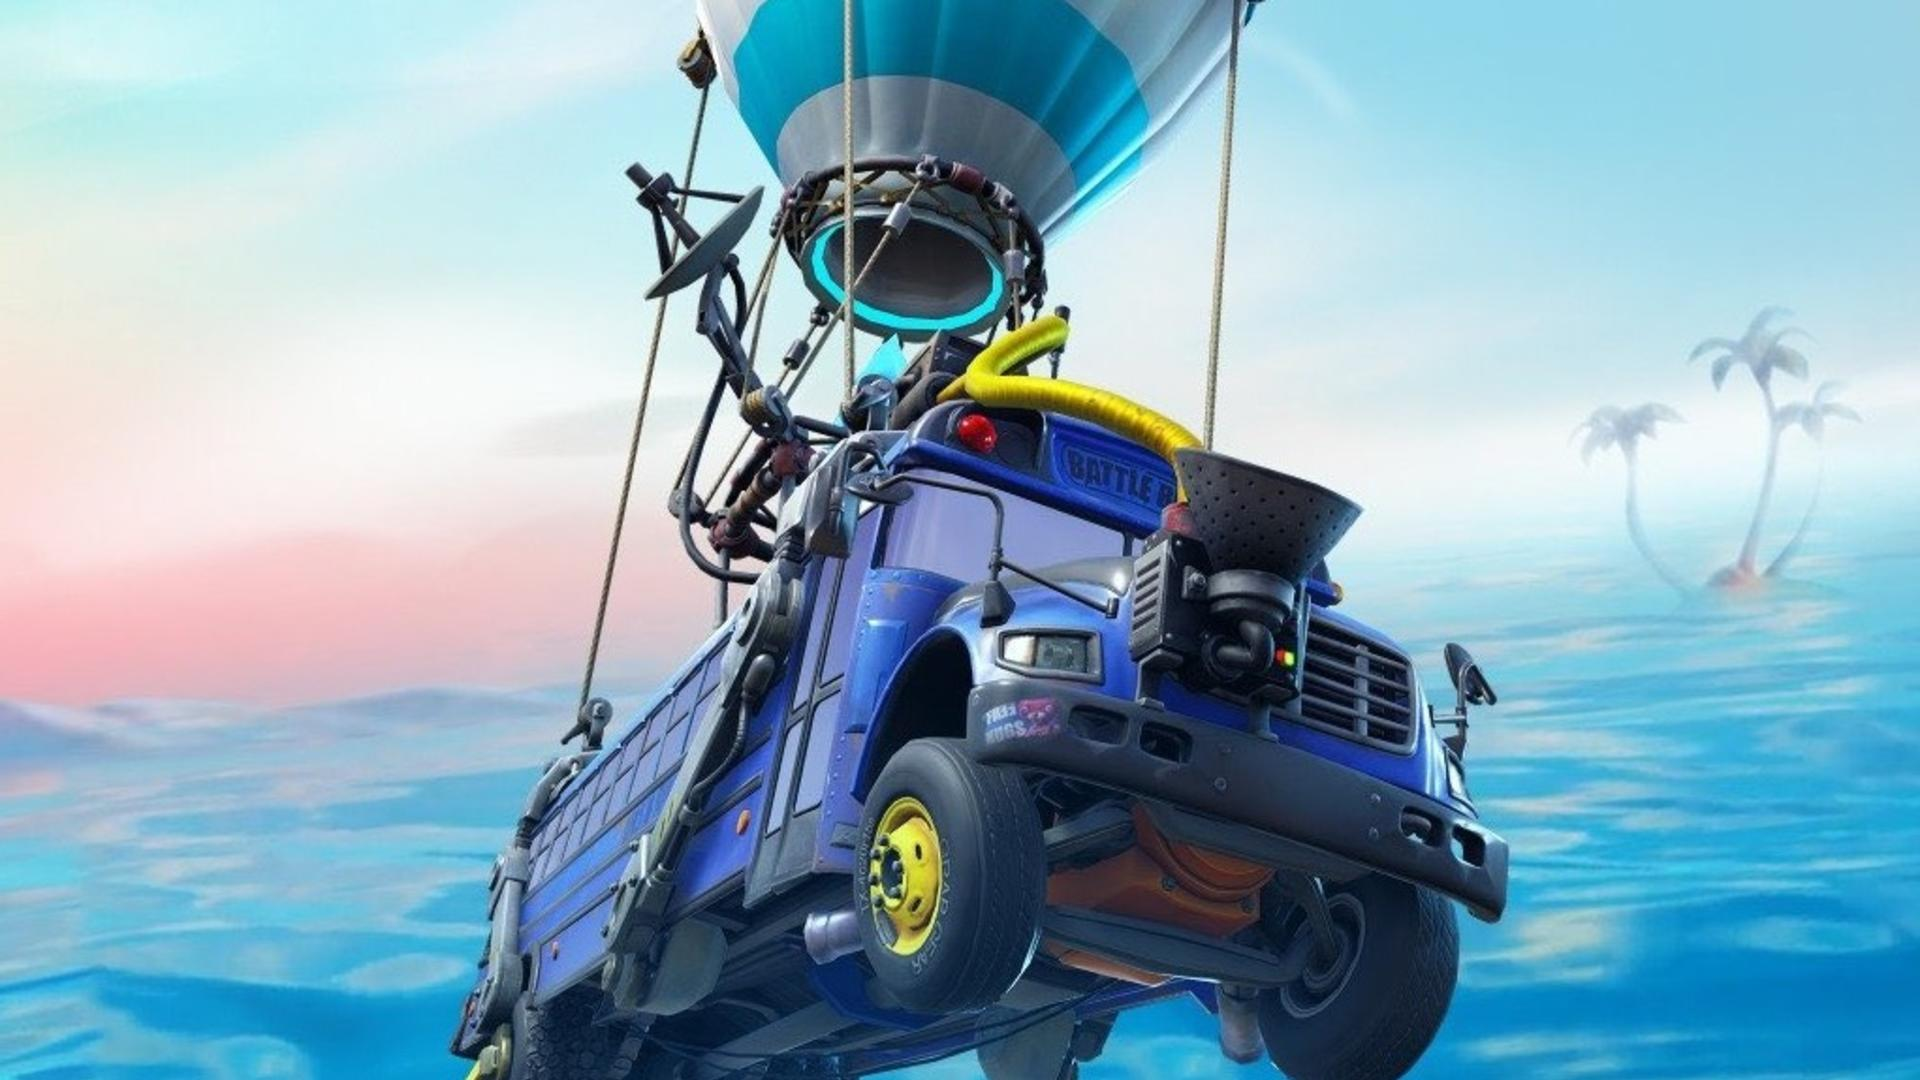 Fortnite's storm is a giant wall of water now thanks to The Agency's doomsday machine